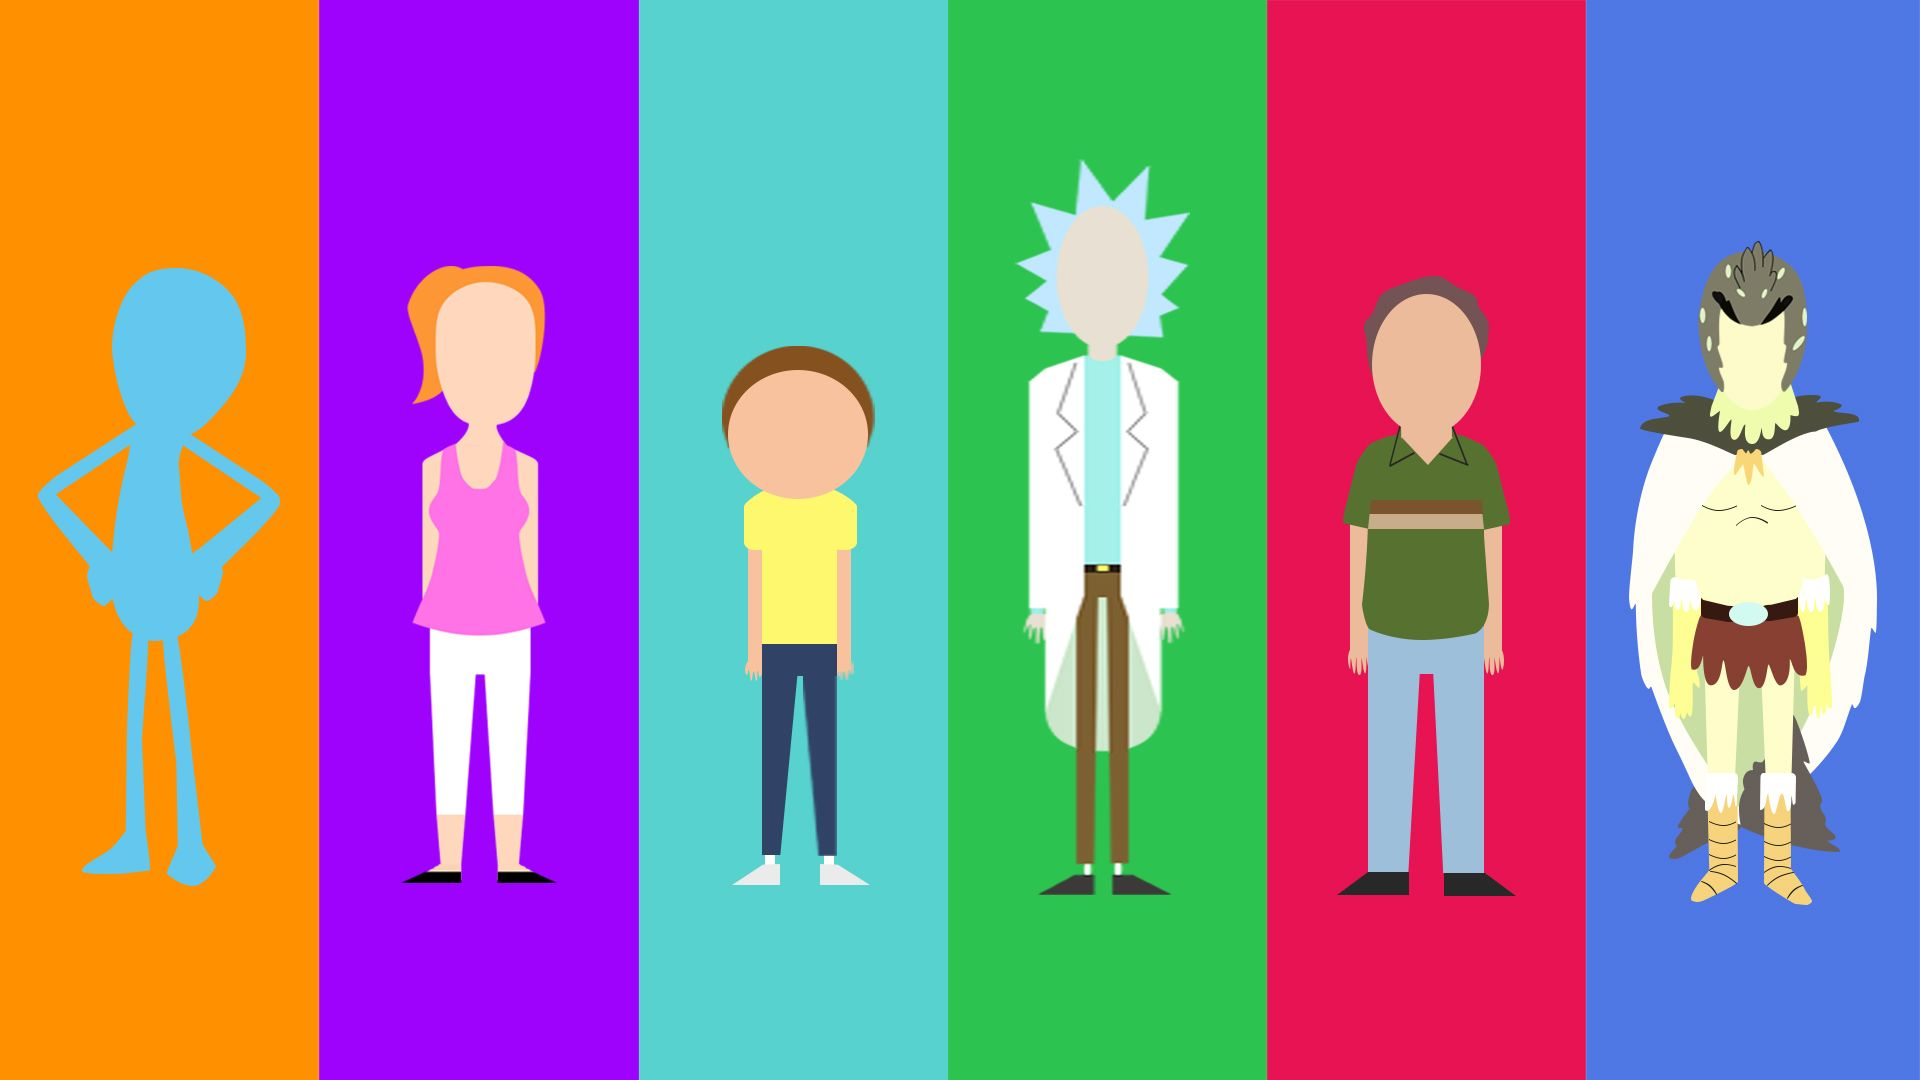 My Minimalist Rick And Morty Character Collection Album On Imgur Rick And Morty Characters Rick And Morty Drawing Rick And Morty Stickers